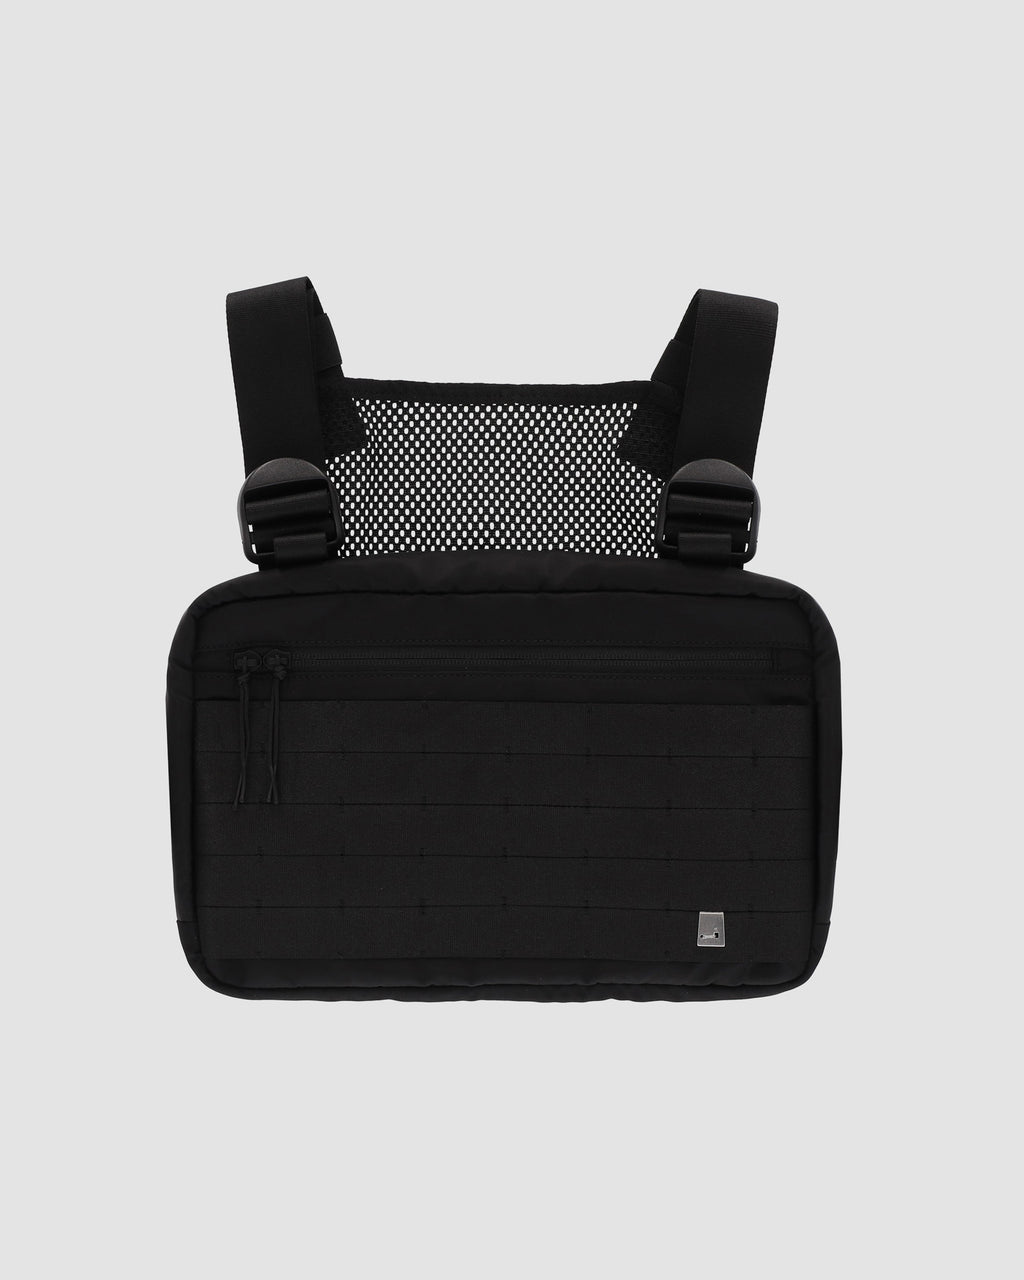 CLASSIC CHEST RIG W/ RAIN COVER